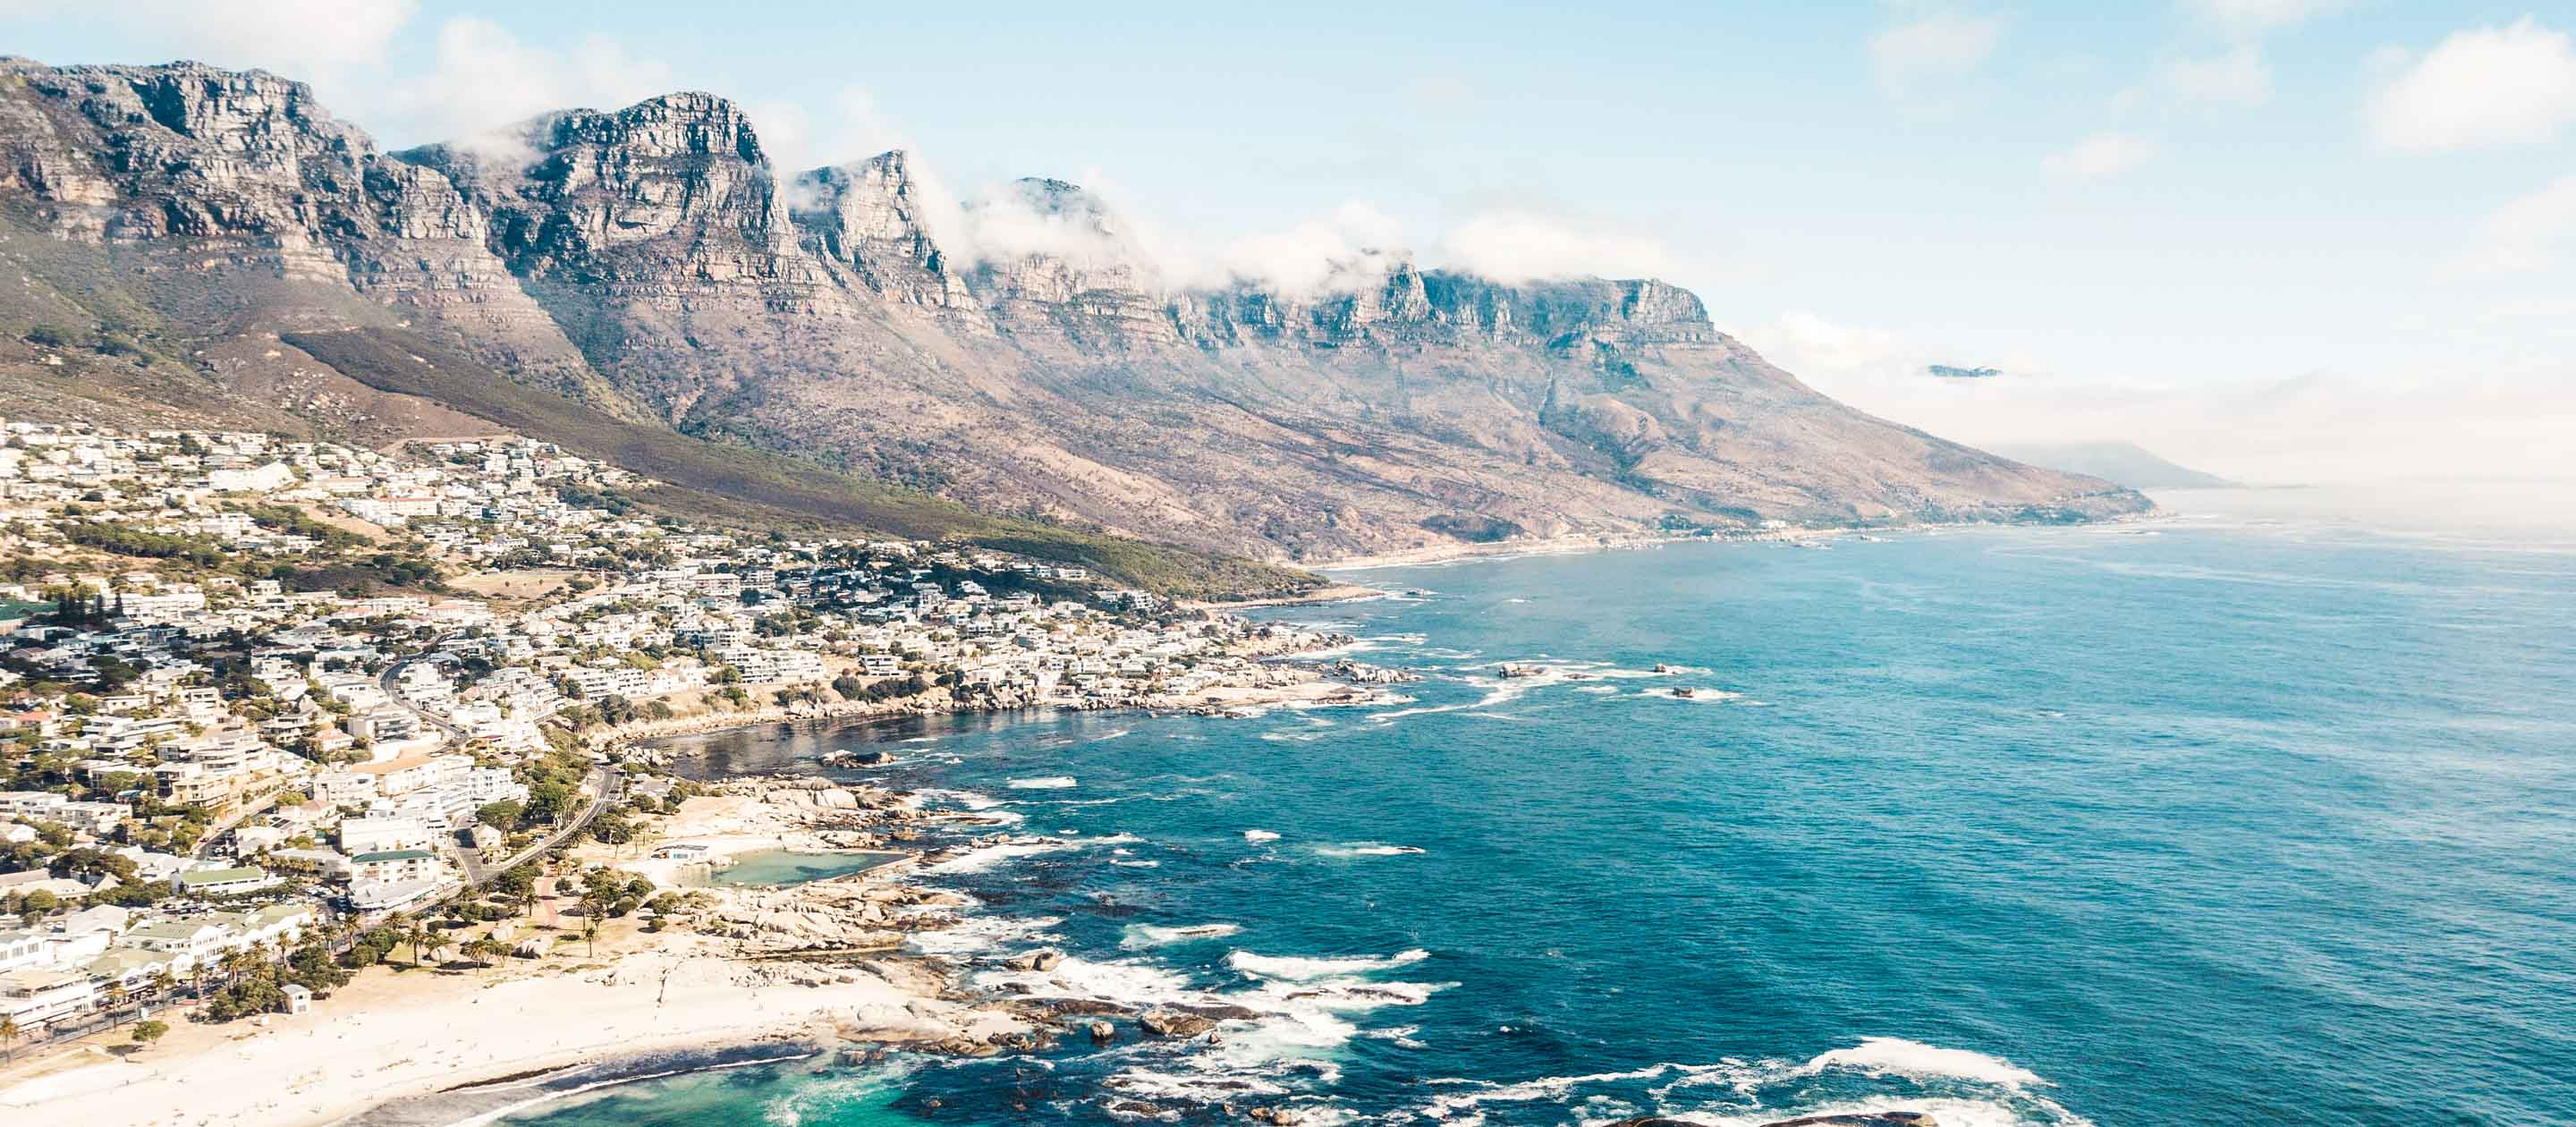 Coast of Cape Town, South Africa